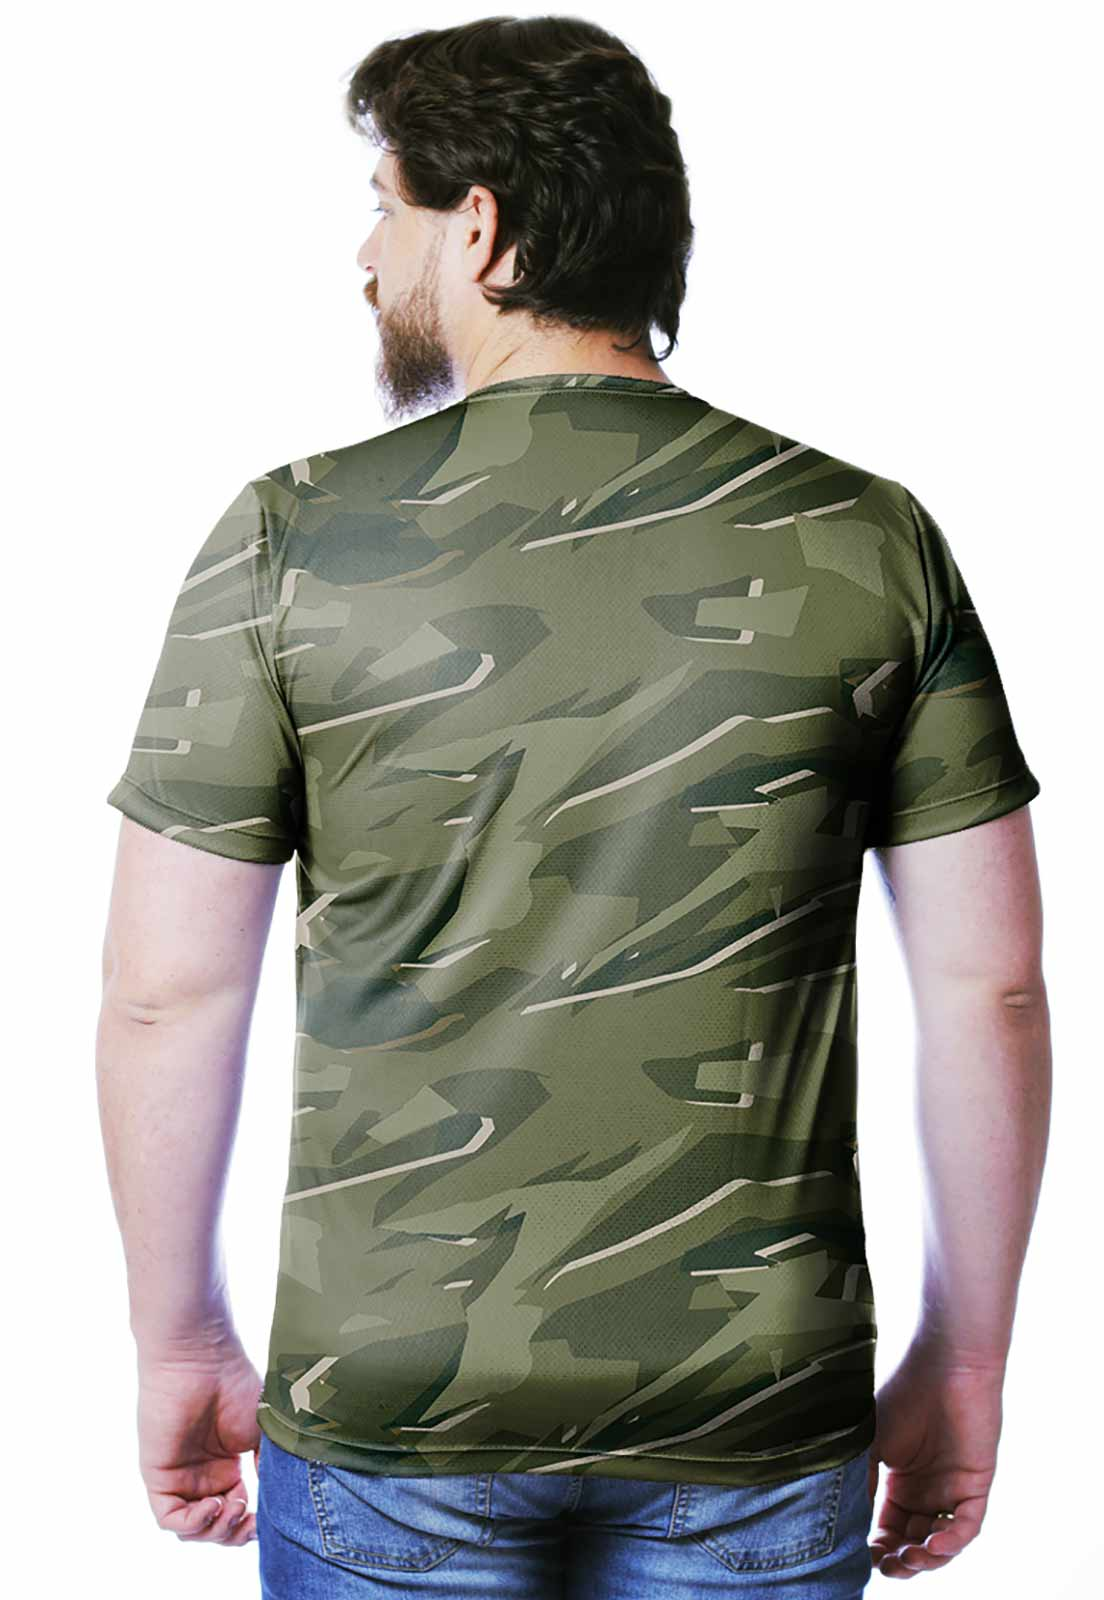 CAMISETA CAMUFLADA PARABELLUM TROPICAL MASCULINA  - REAL HUNTER OUTDOORS